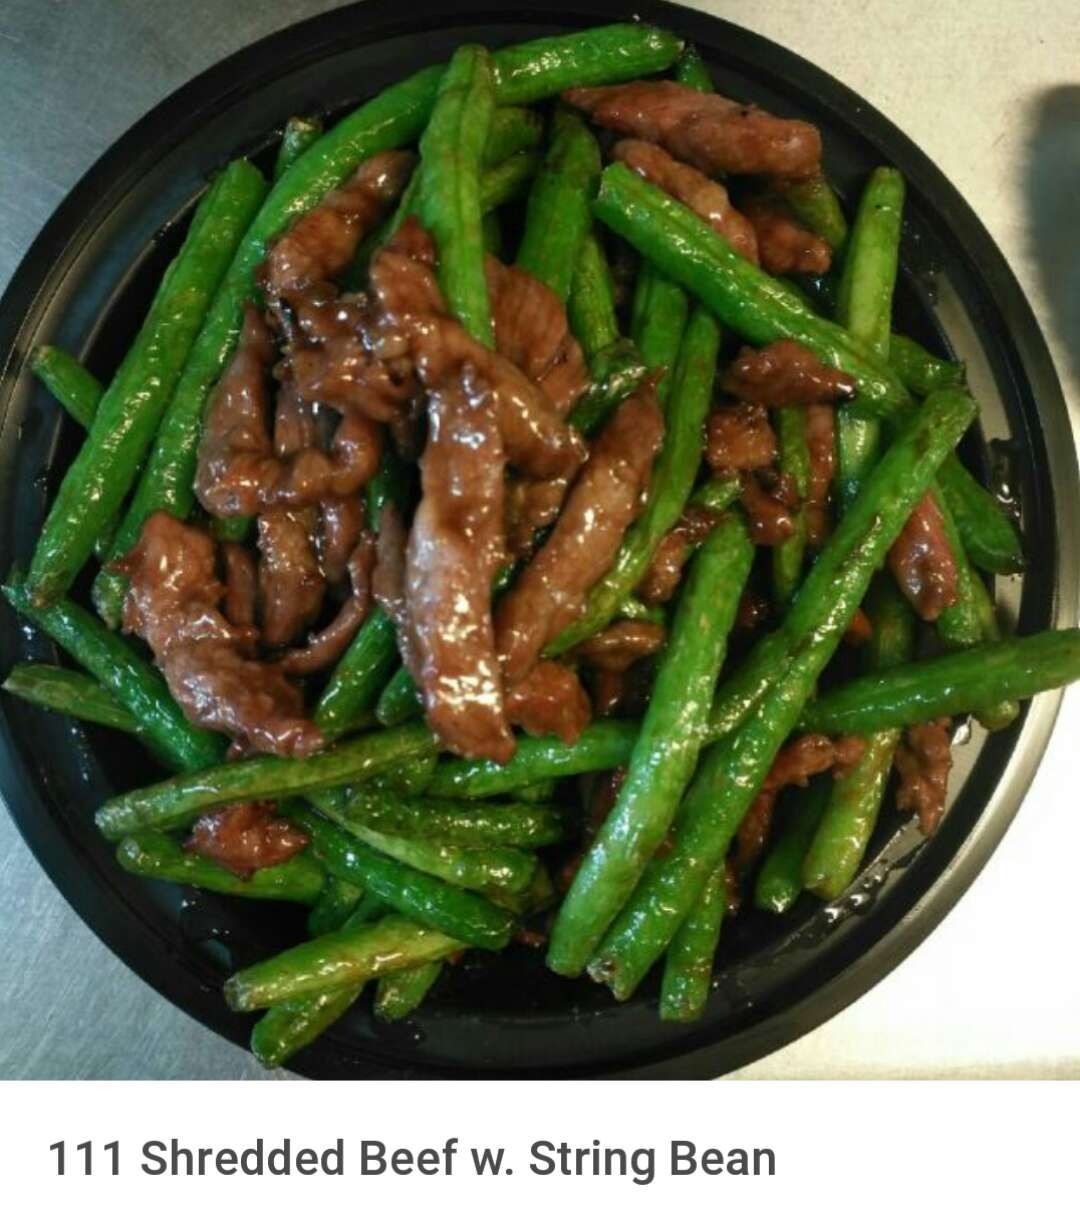 111. Shredded Beef w. String Bean Image